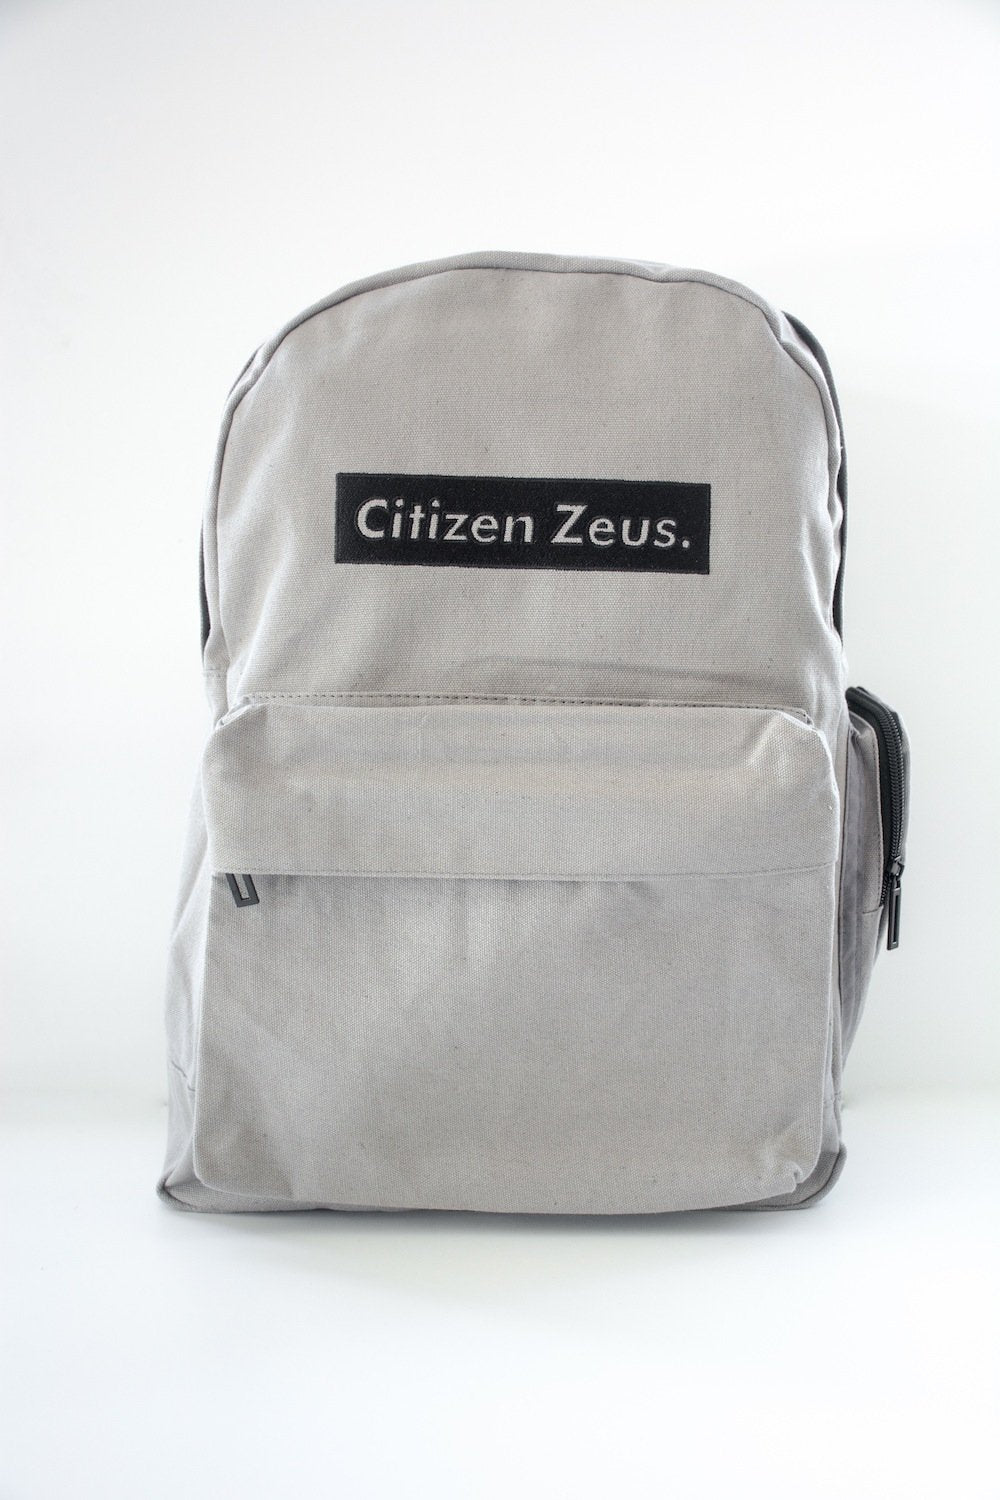 Citizen Zeus Traditional Back Pack - Grey